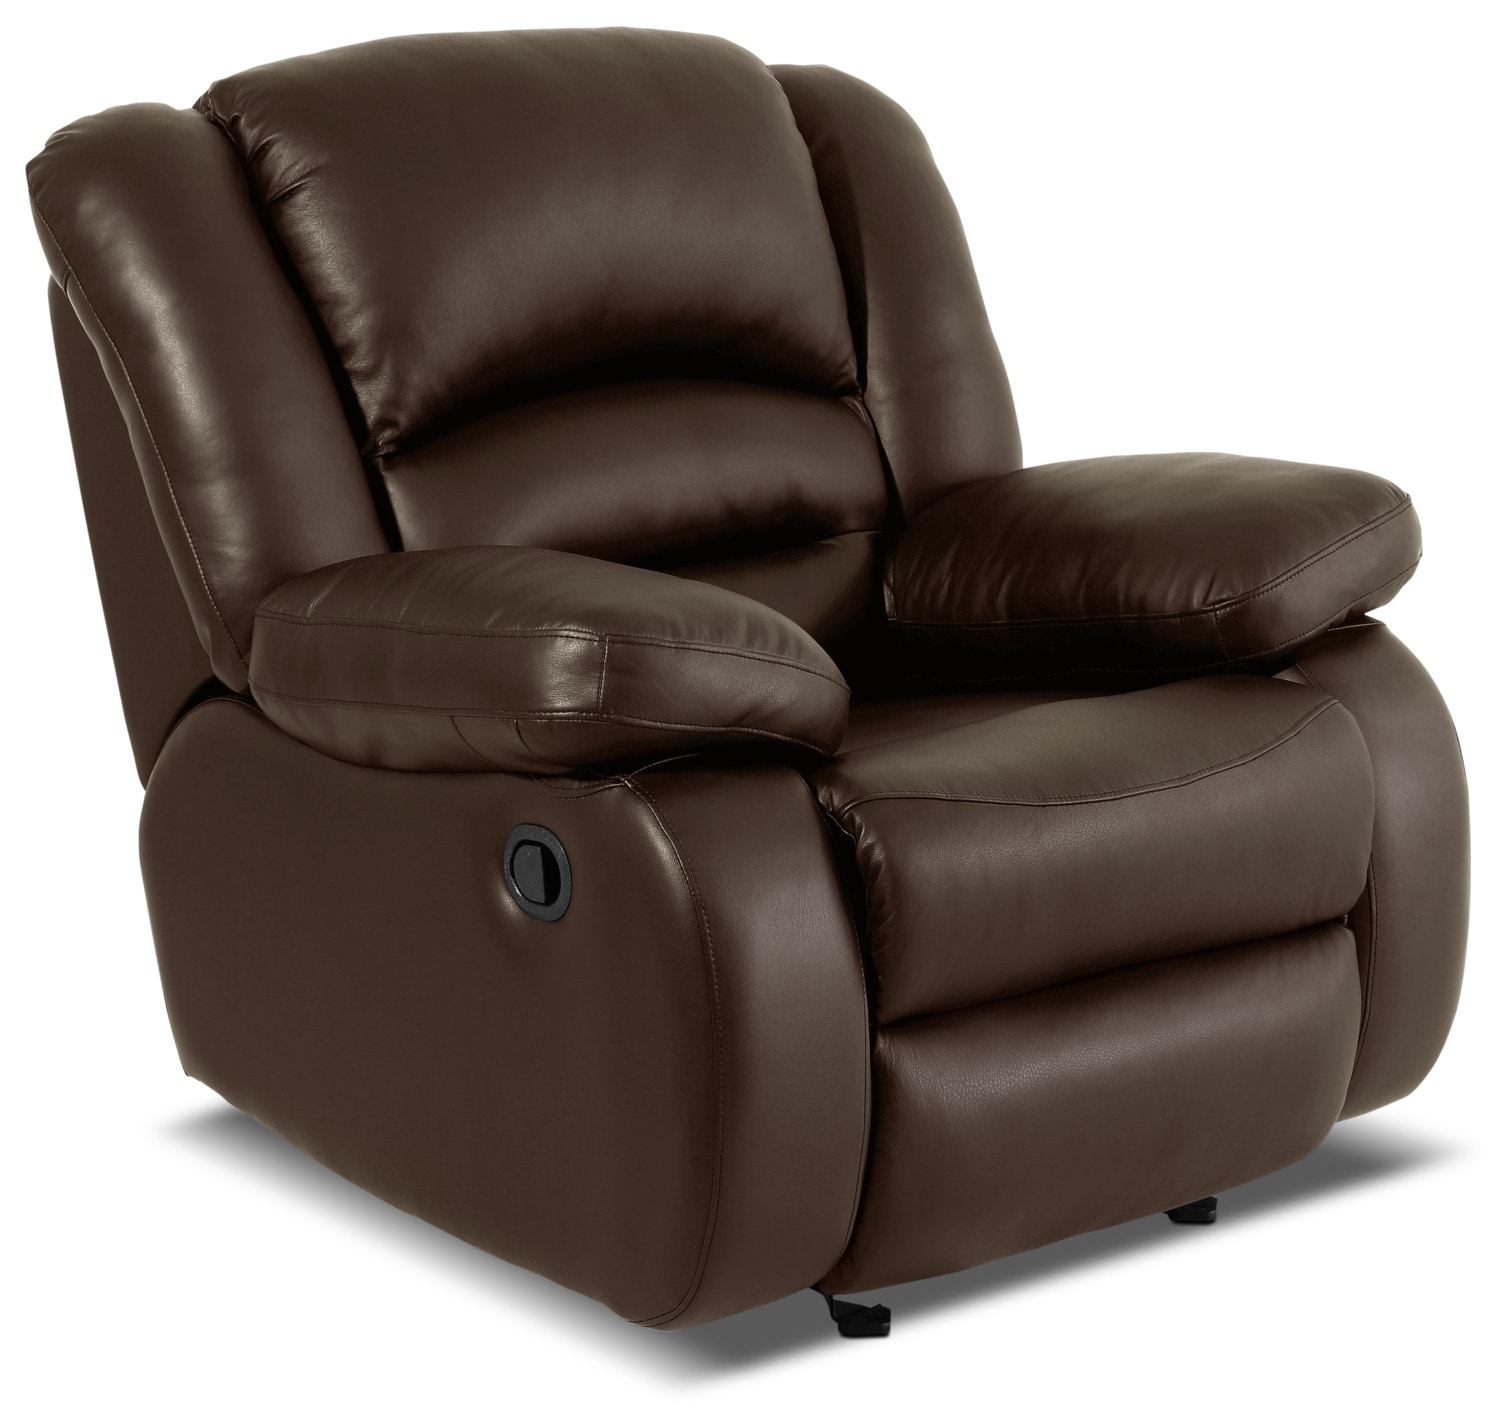 Toreno Genuine Leather Reclining Chair – Brown